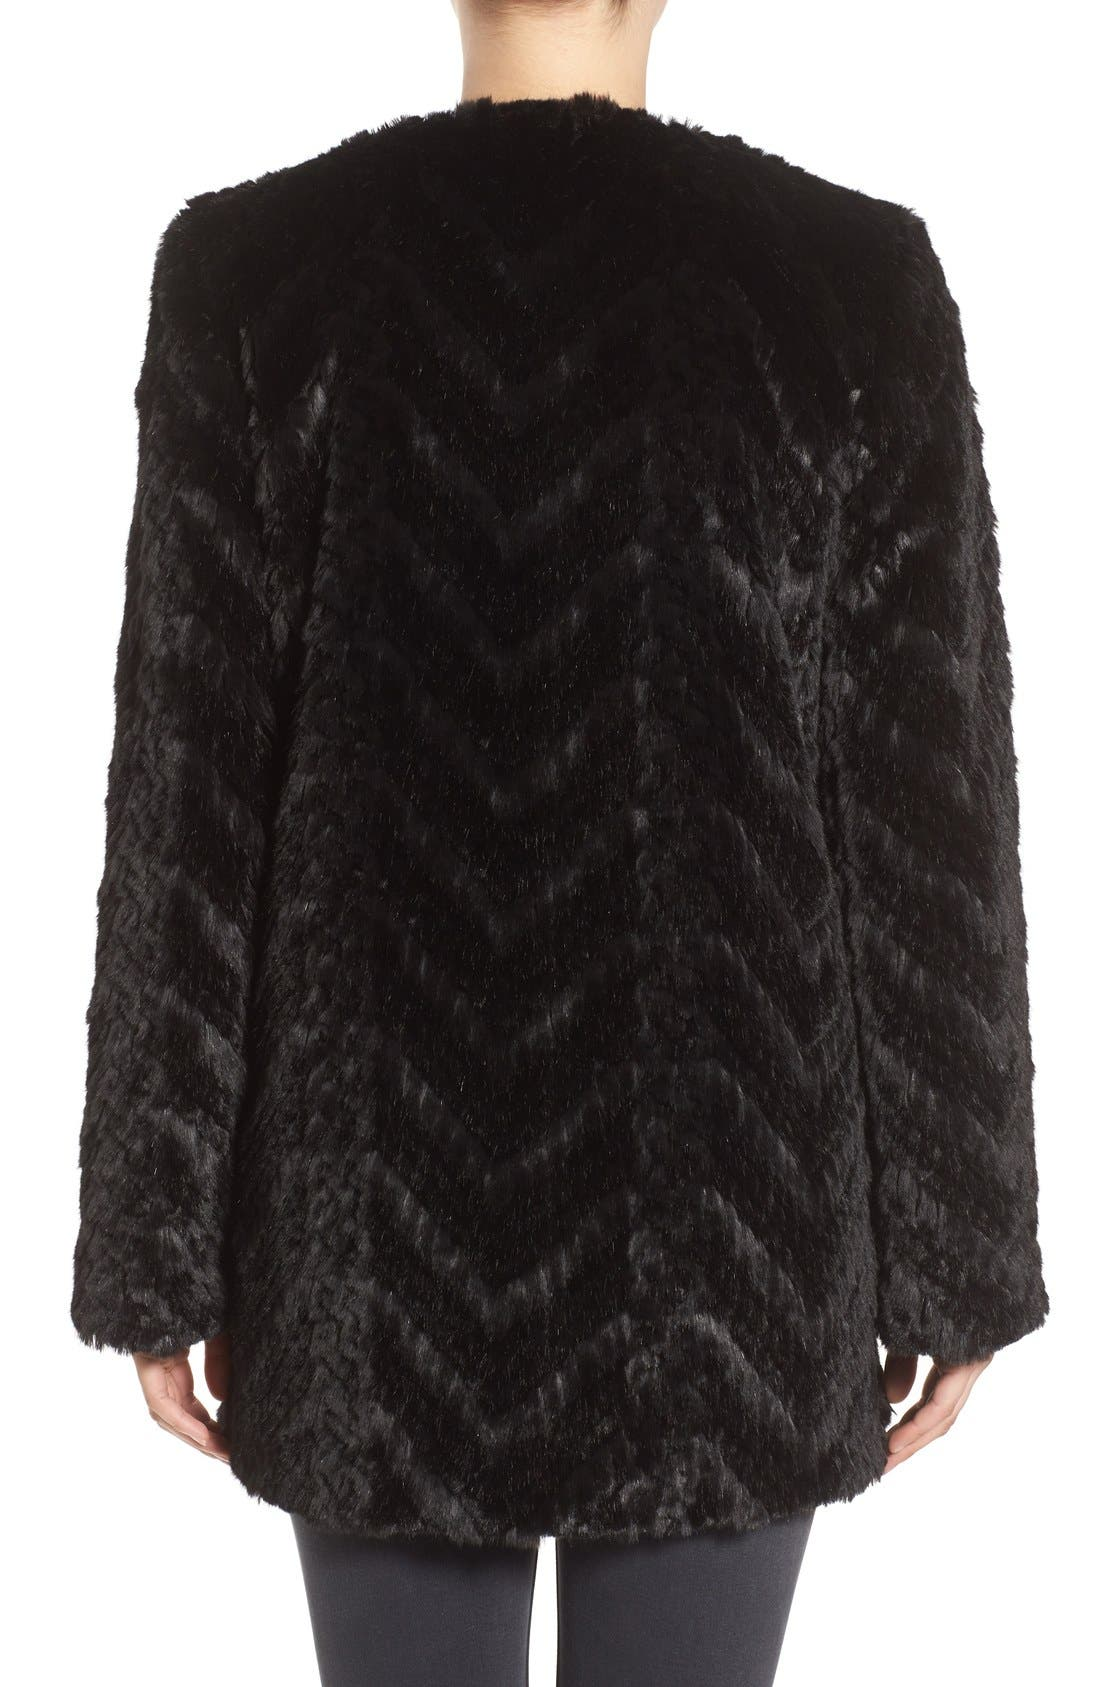 Tiered Faux Fur Topper,                             Alternate thumbnail 2, color,                             001